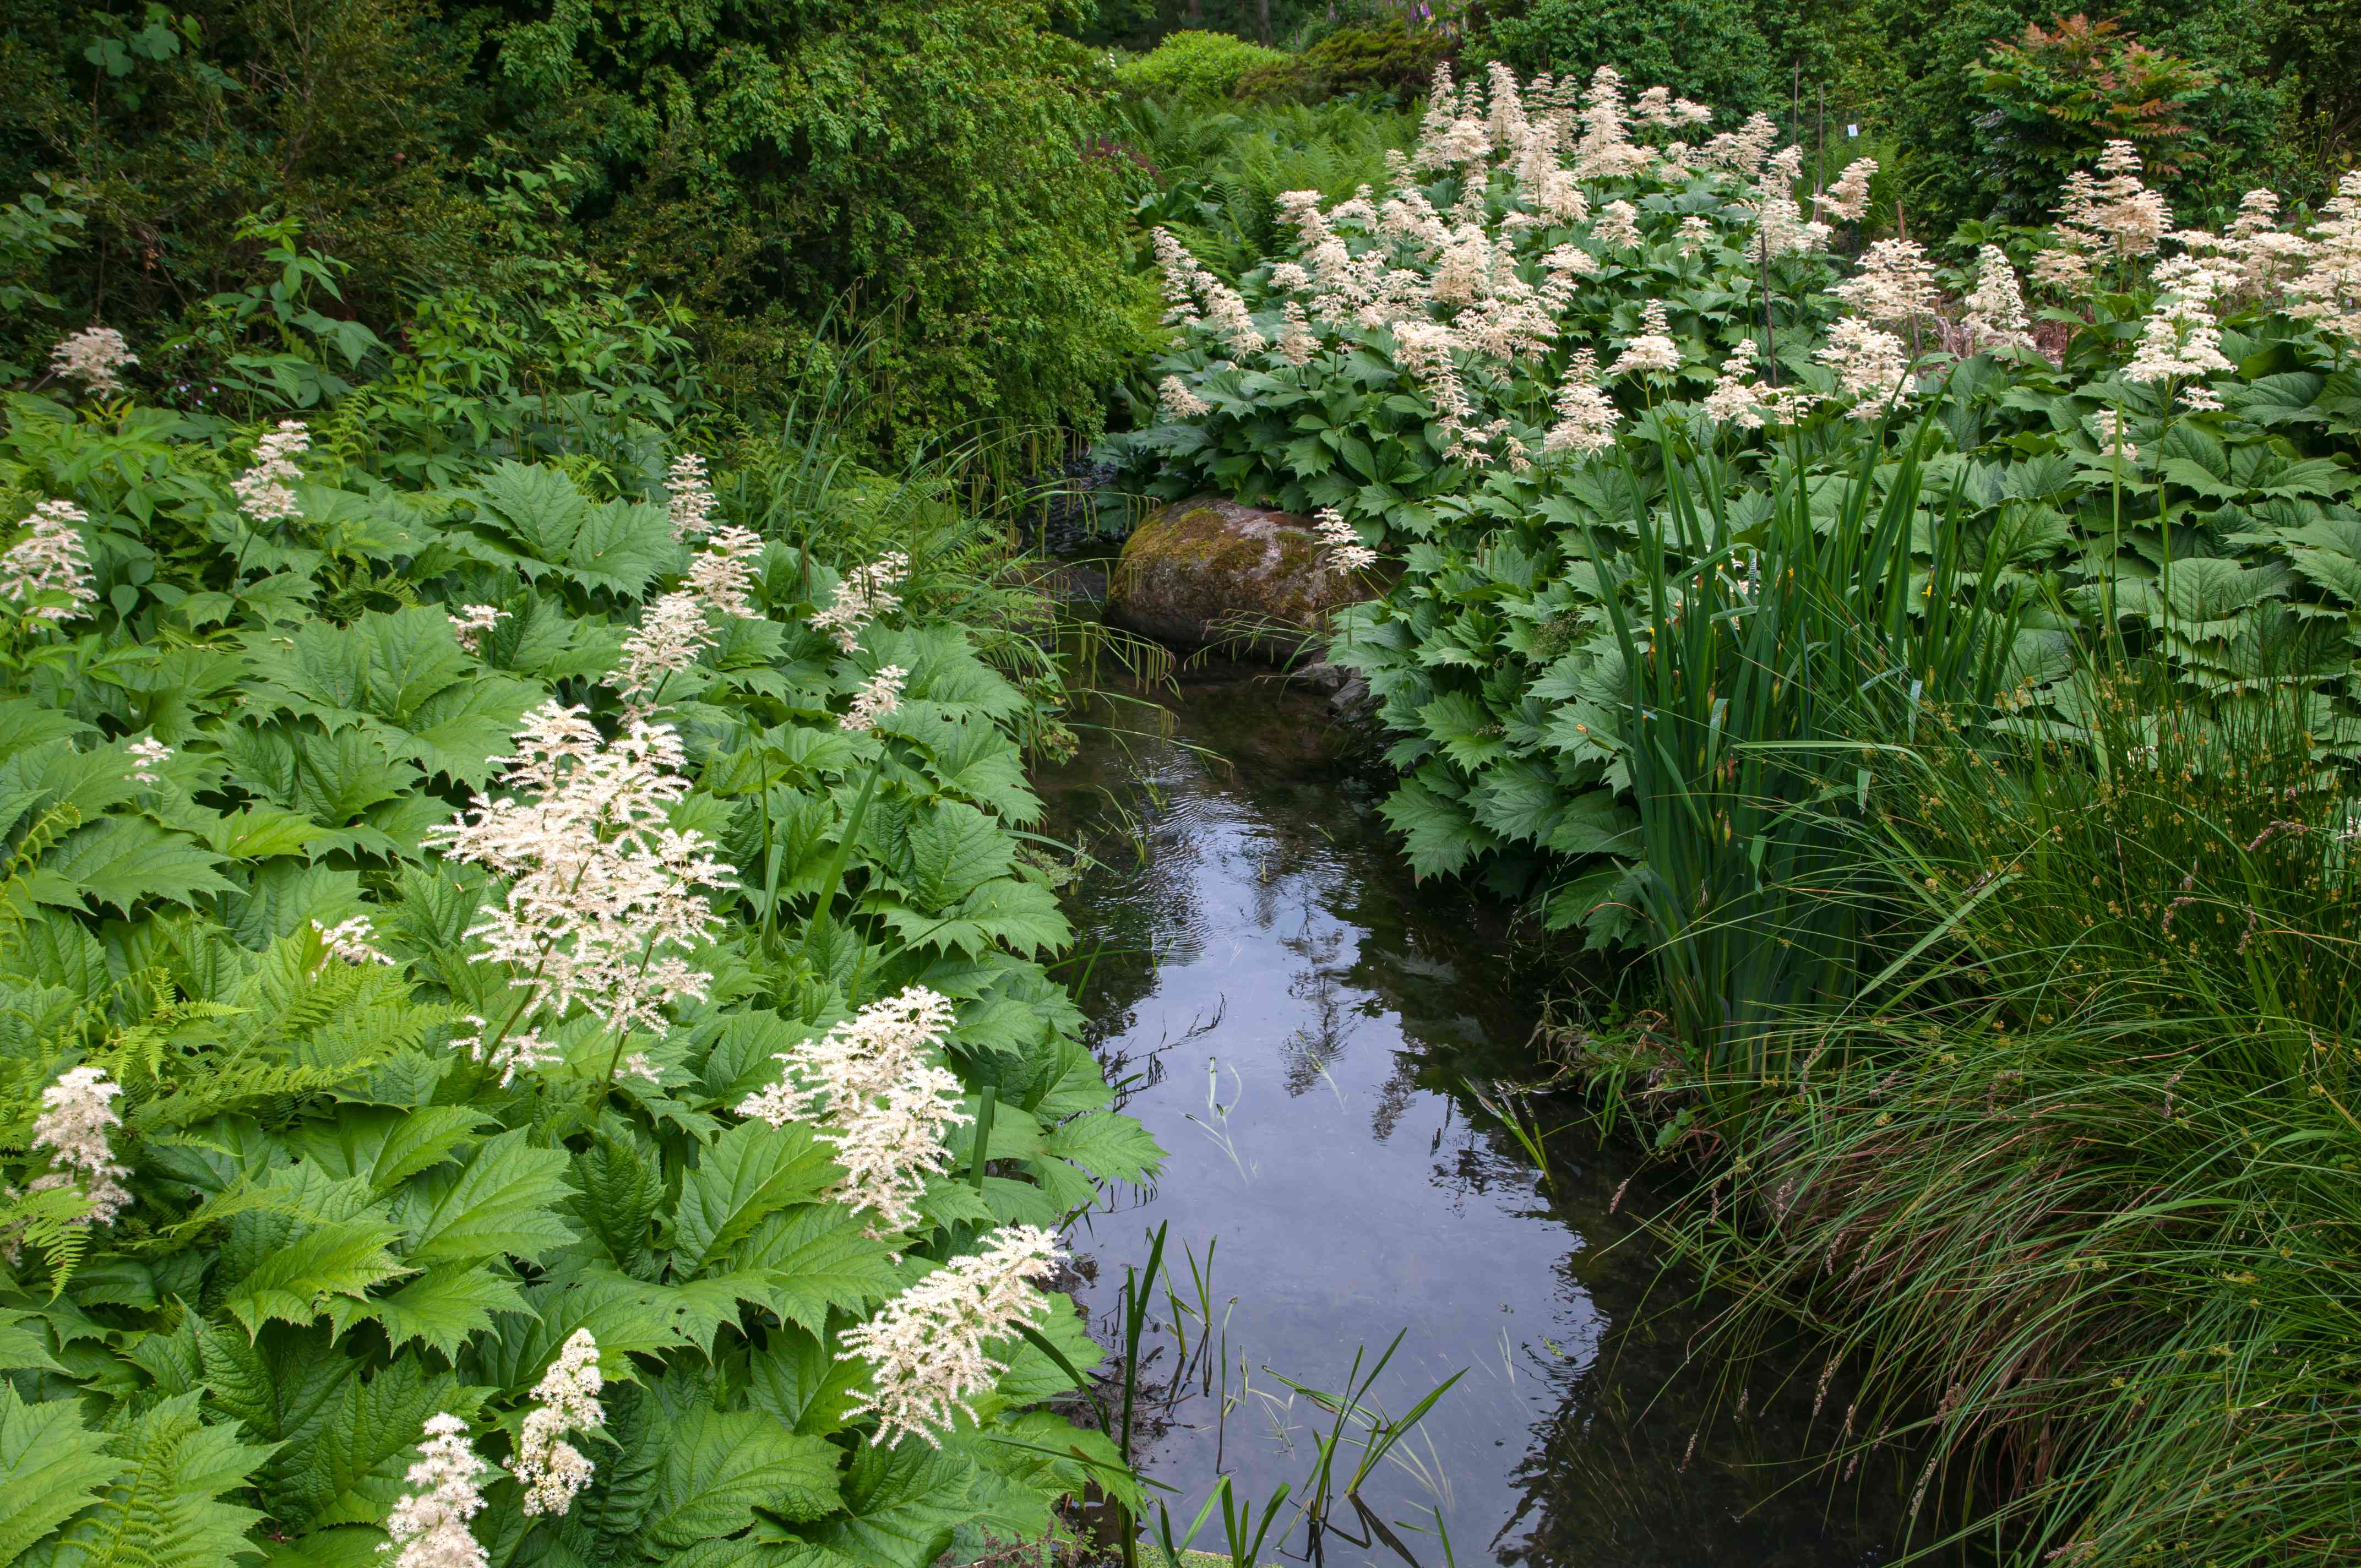 Rodgers flowers with light pink showy plumes and large leaves on either side of a stream